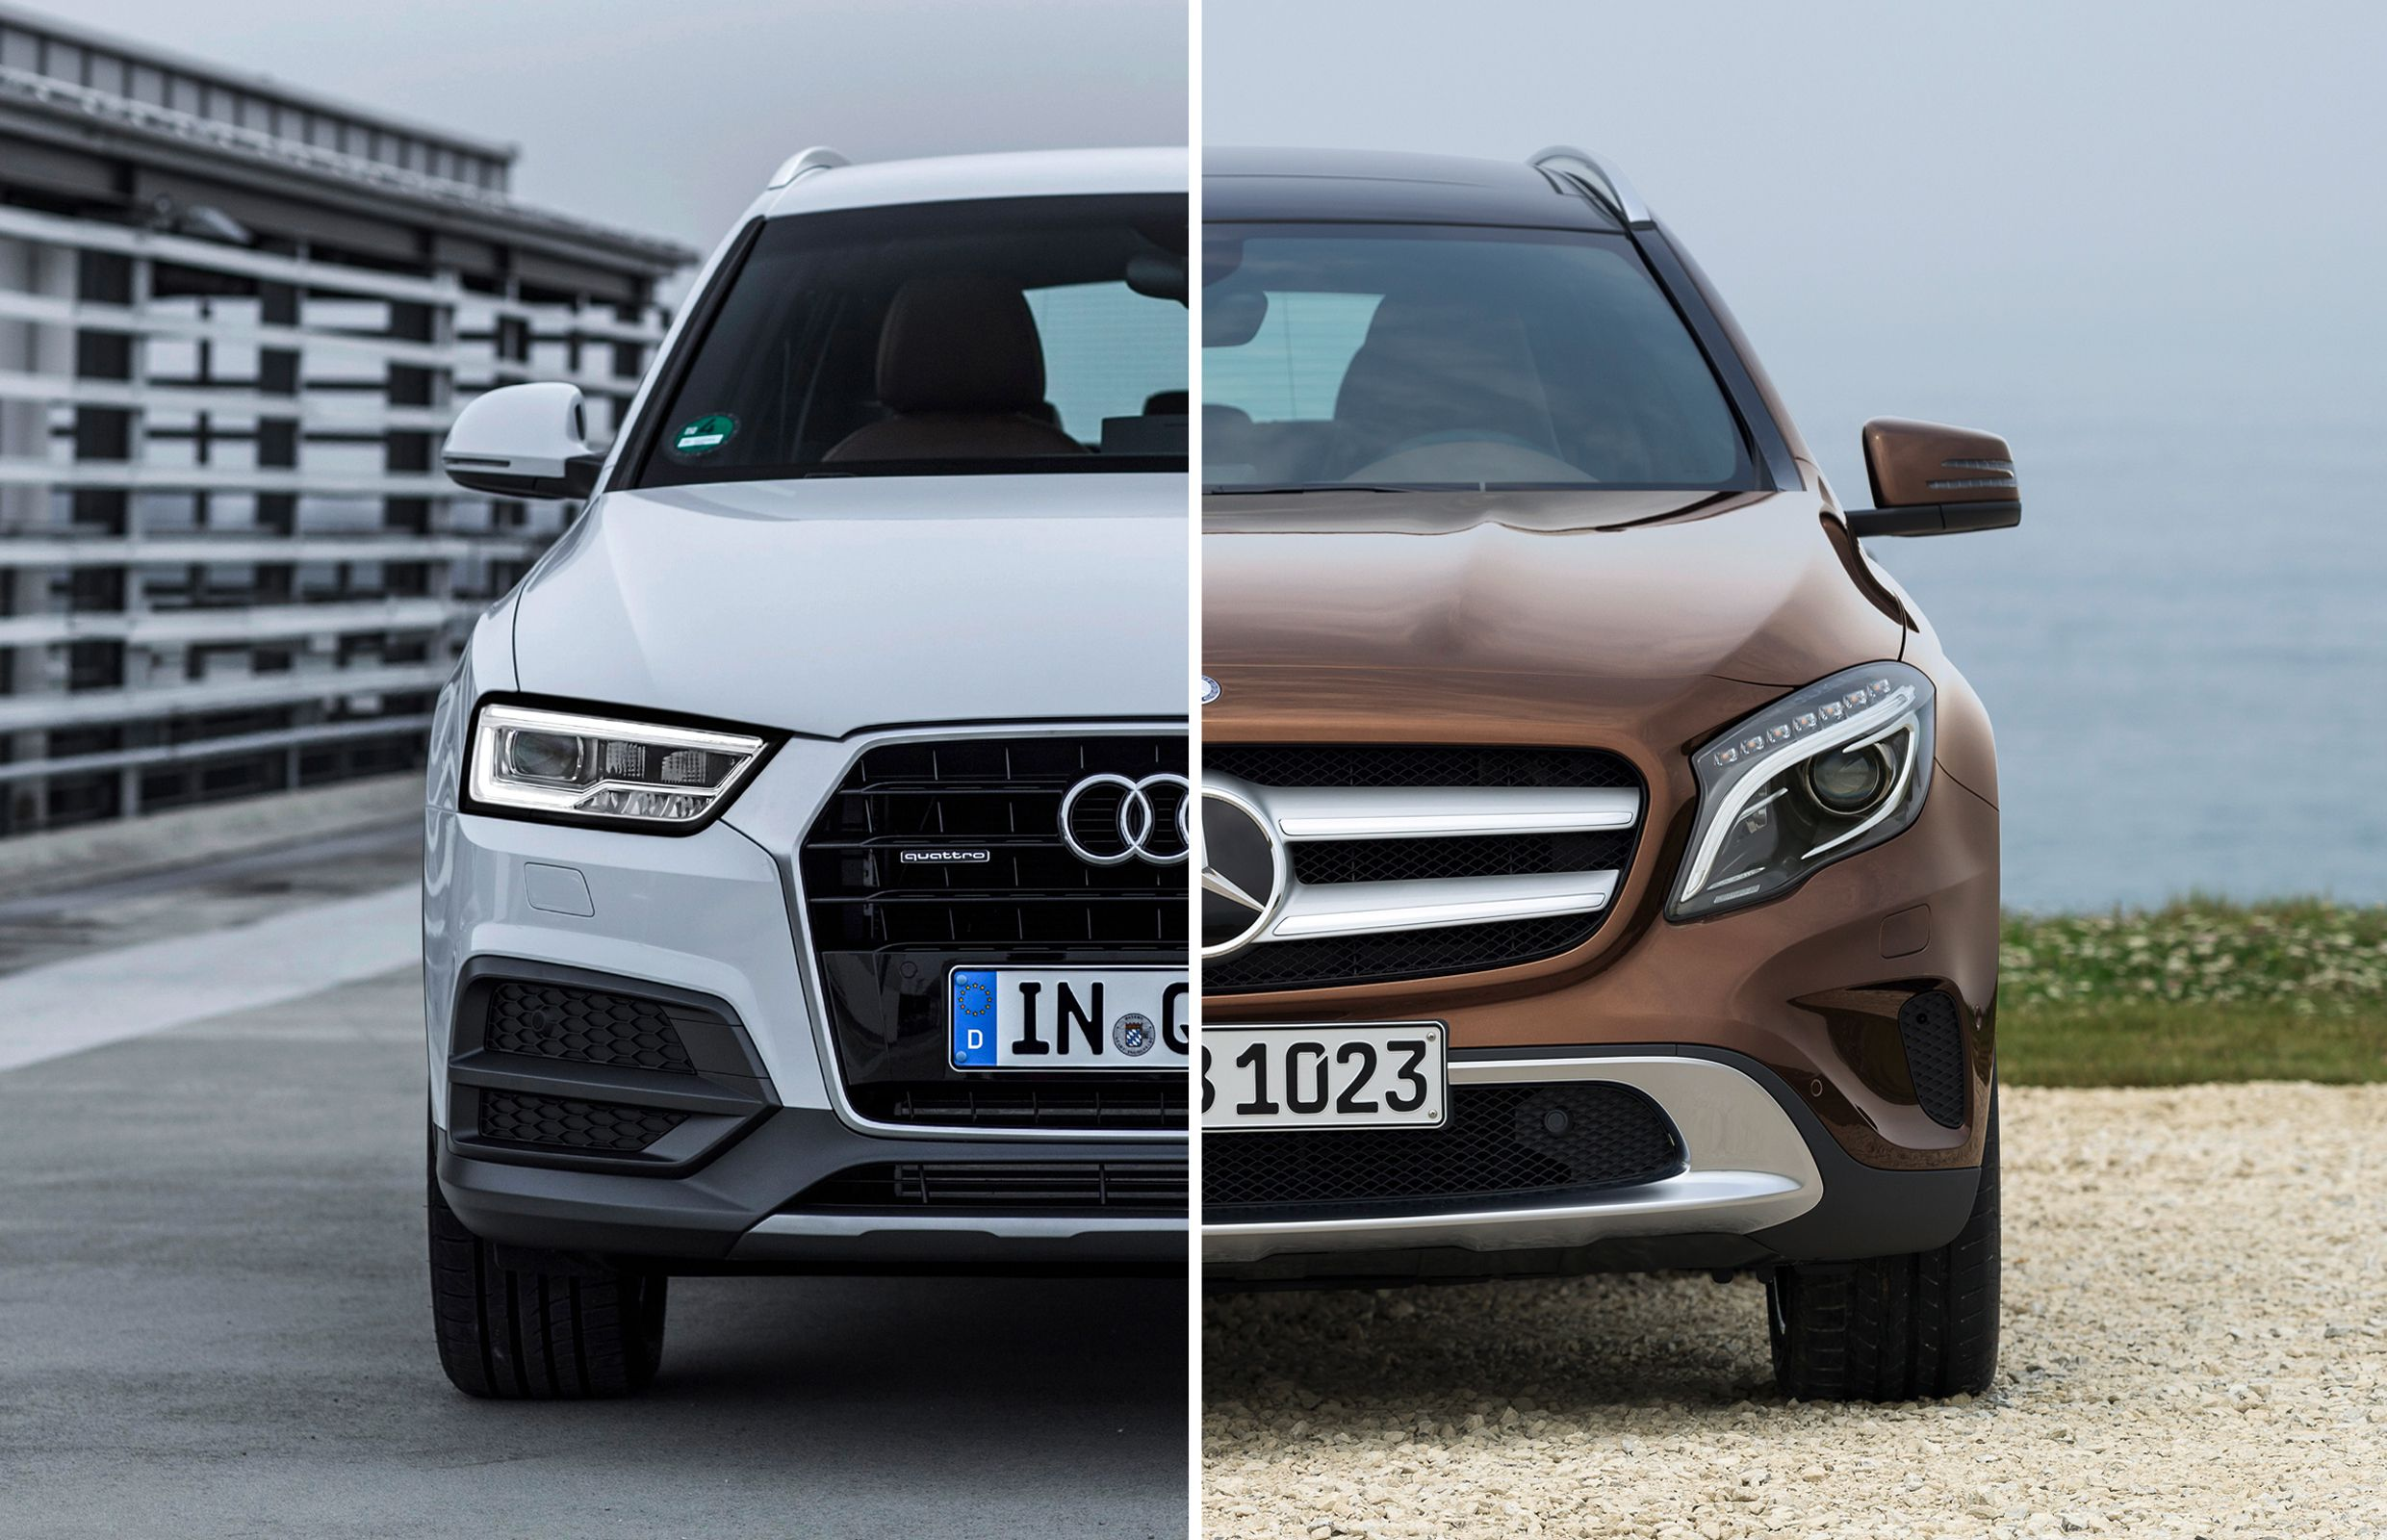 Audi Q3 vs Mercedes-Benz GLA comparison